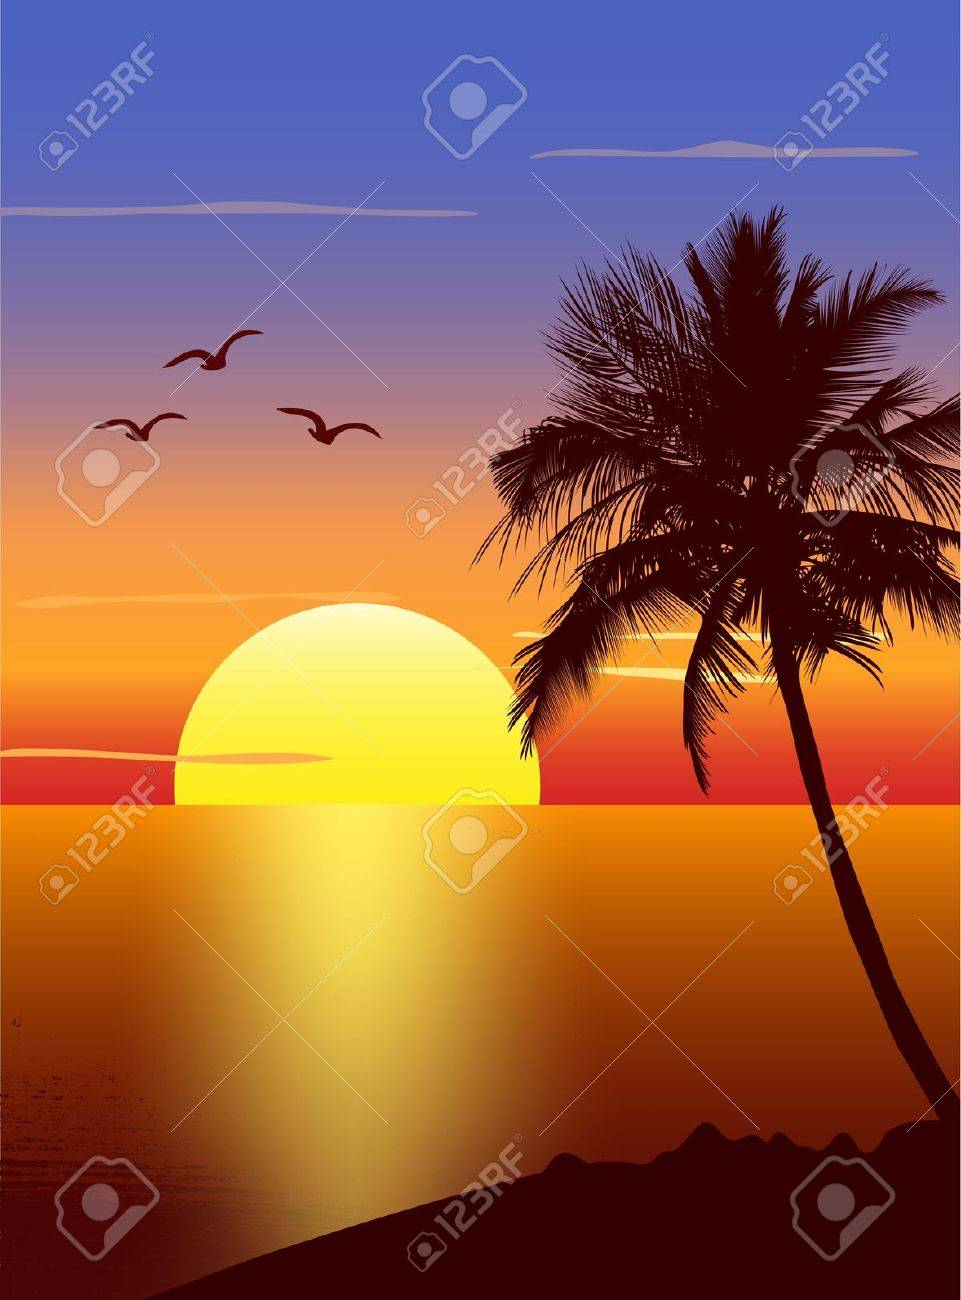 Sunset with palmtree silhouette Stock Vector - 12897696